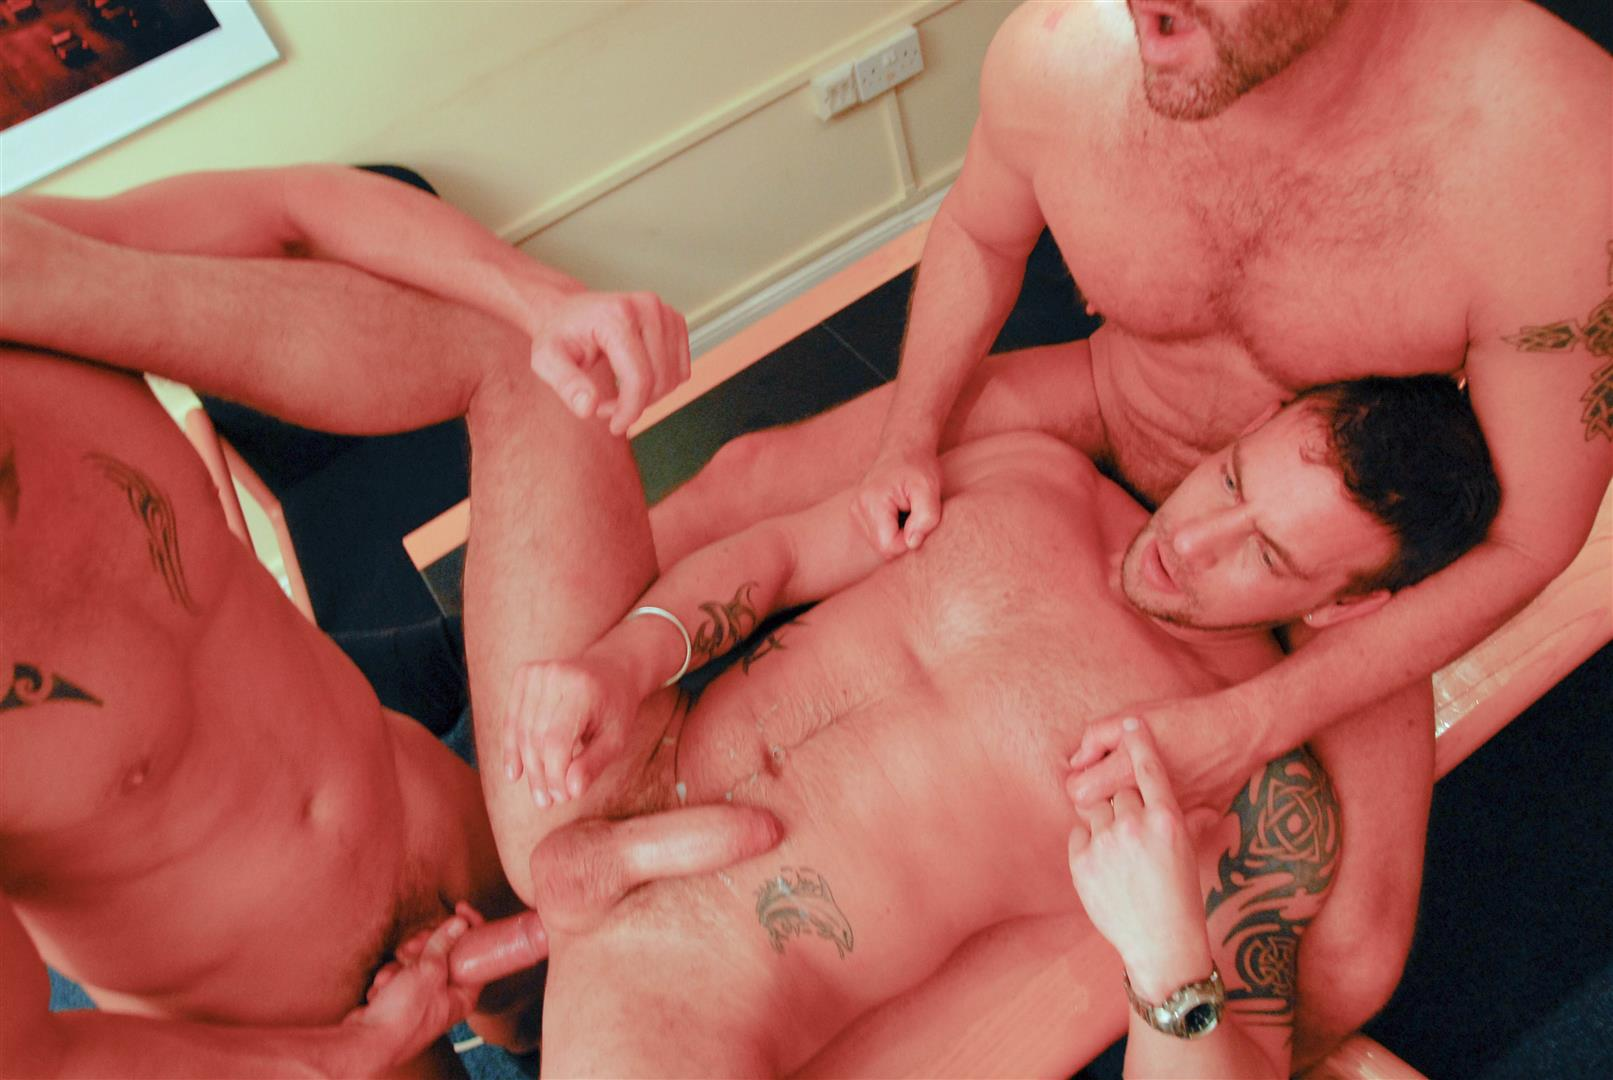 AlphaMales-Kurt-Rogers-and-Jake-Ryder-and-Matthew-Ford-Bareback-Threesome-Amateur-Gay-Porn-23 Three Office Hunks In Suits With Big Uncut Cocks Bareback Fucking In The Workplace